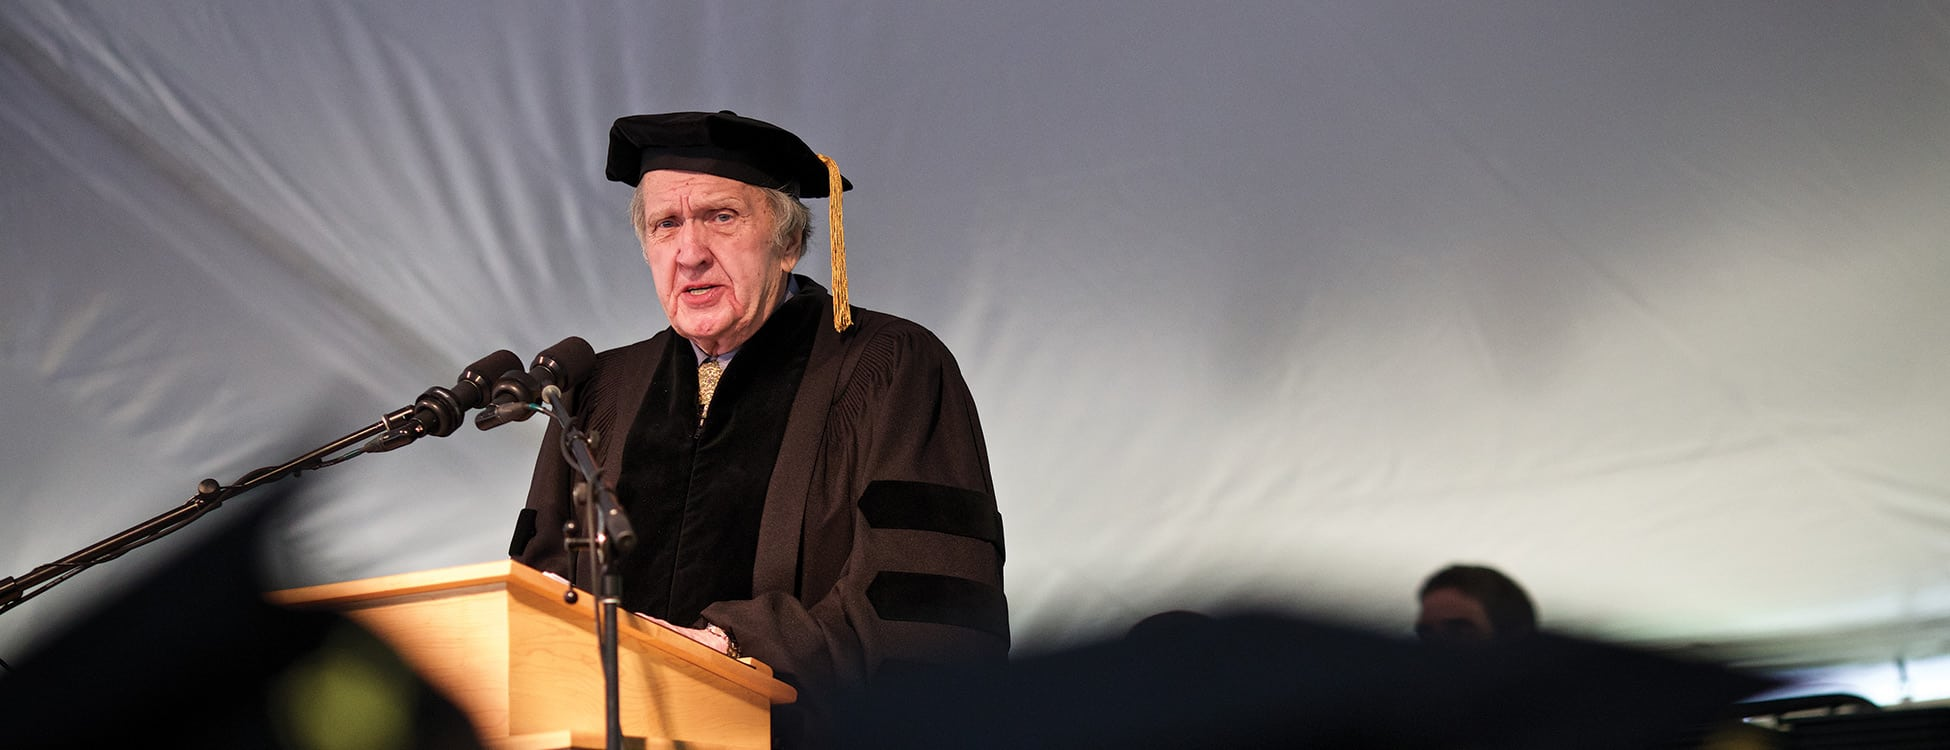 Squier speaking at podium at commencement ceremony